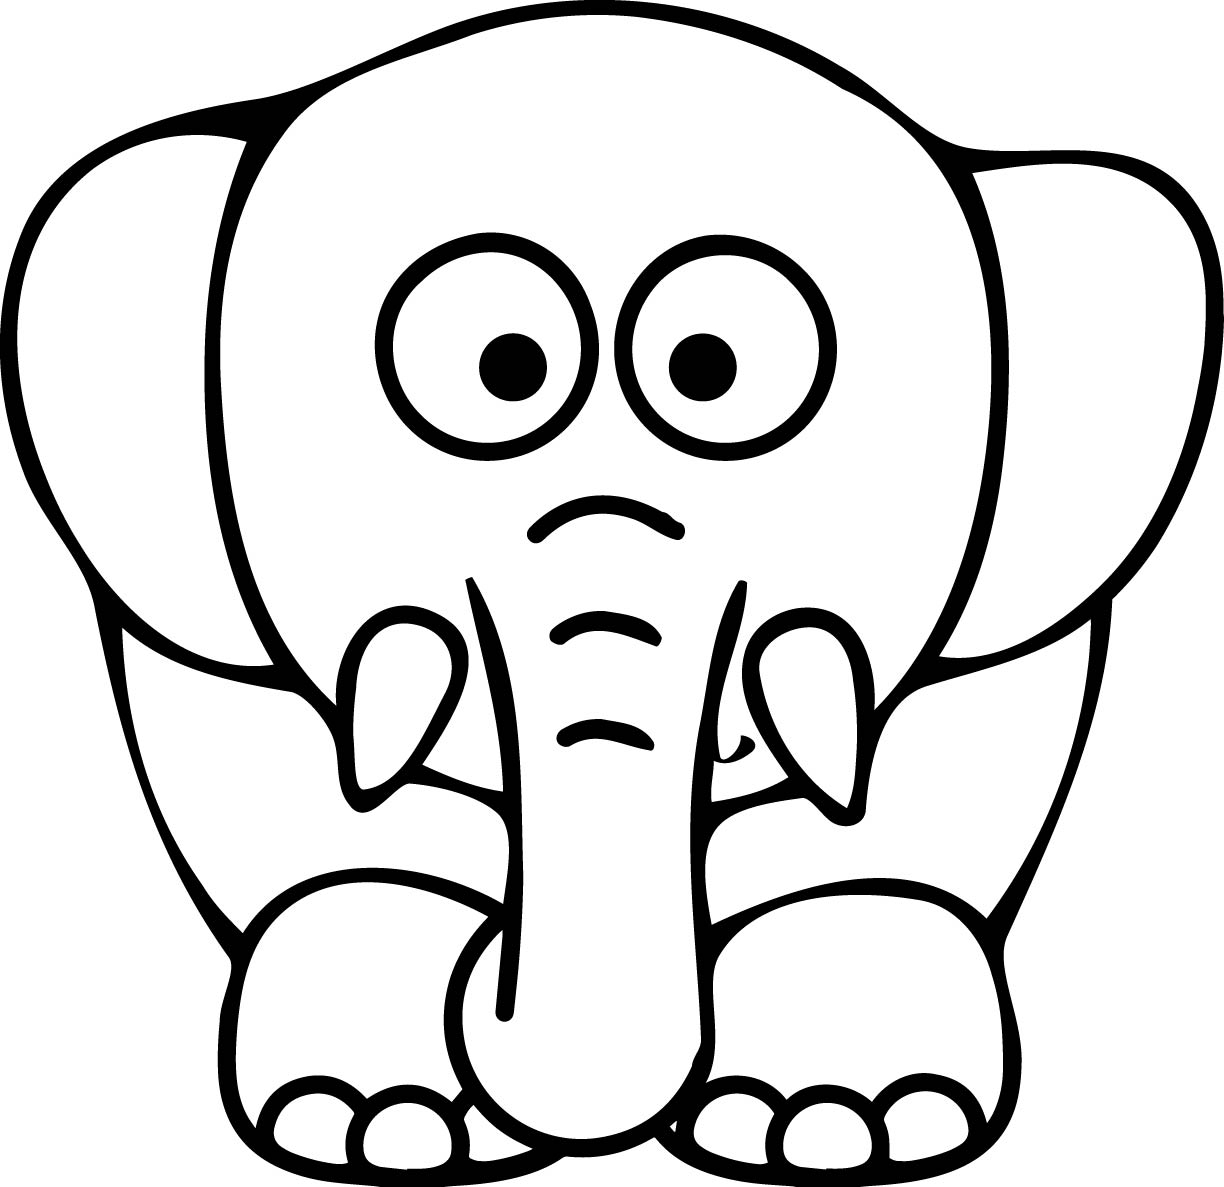 Coloring Pages Cartoon Elephant Coloring Pages elephant coloring pages wecoloringpage pages